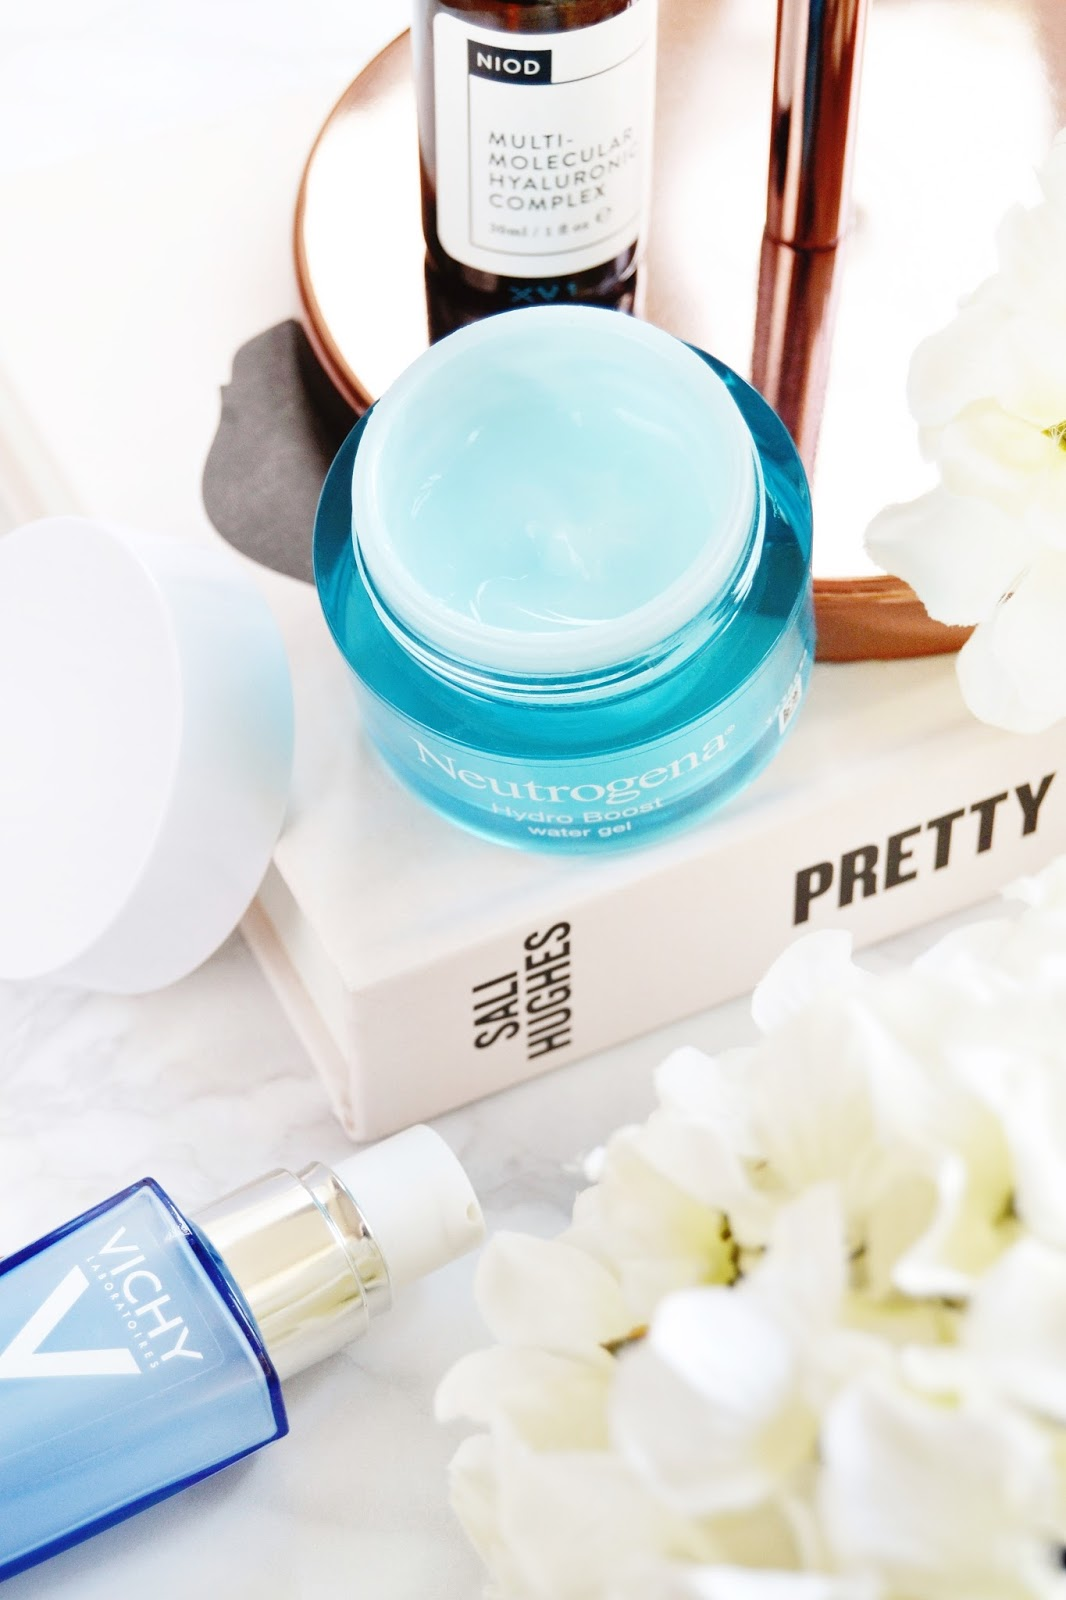 6 Top Selling Amazon Beauty Products in 2020 (they might surprise you)